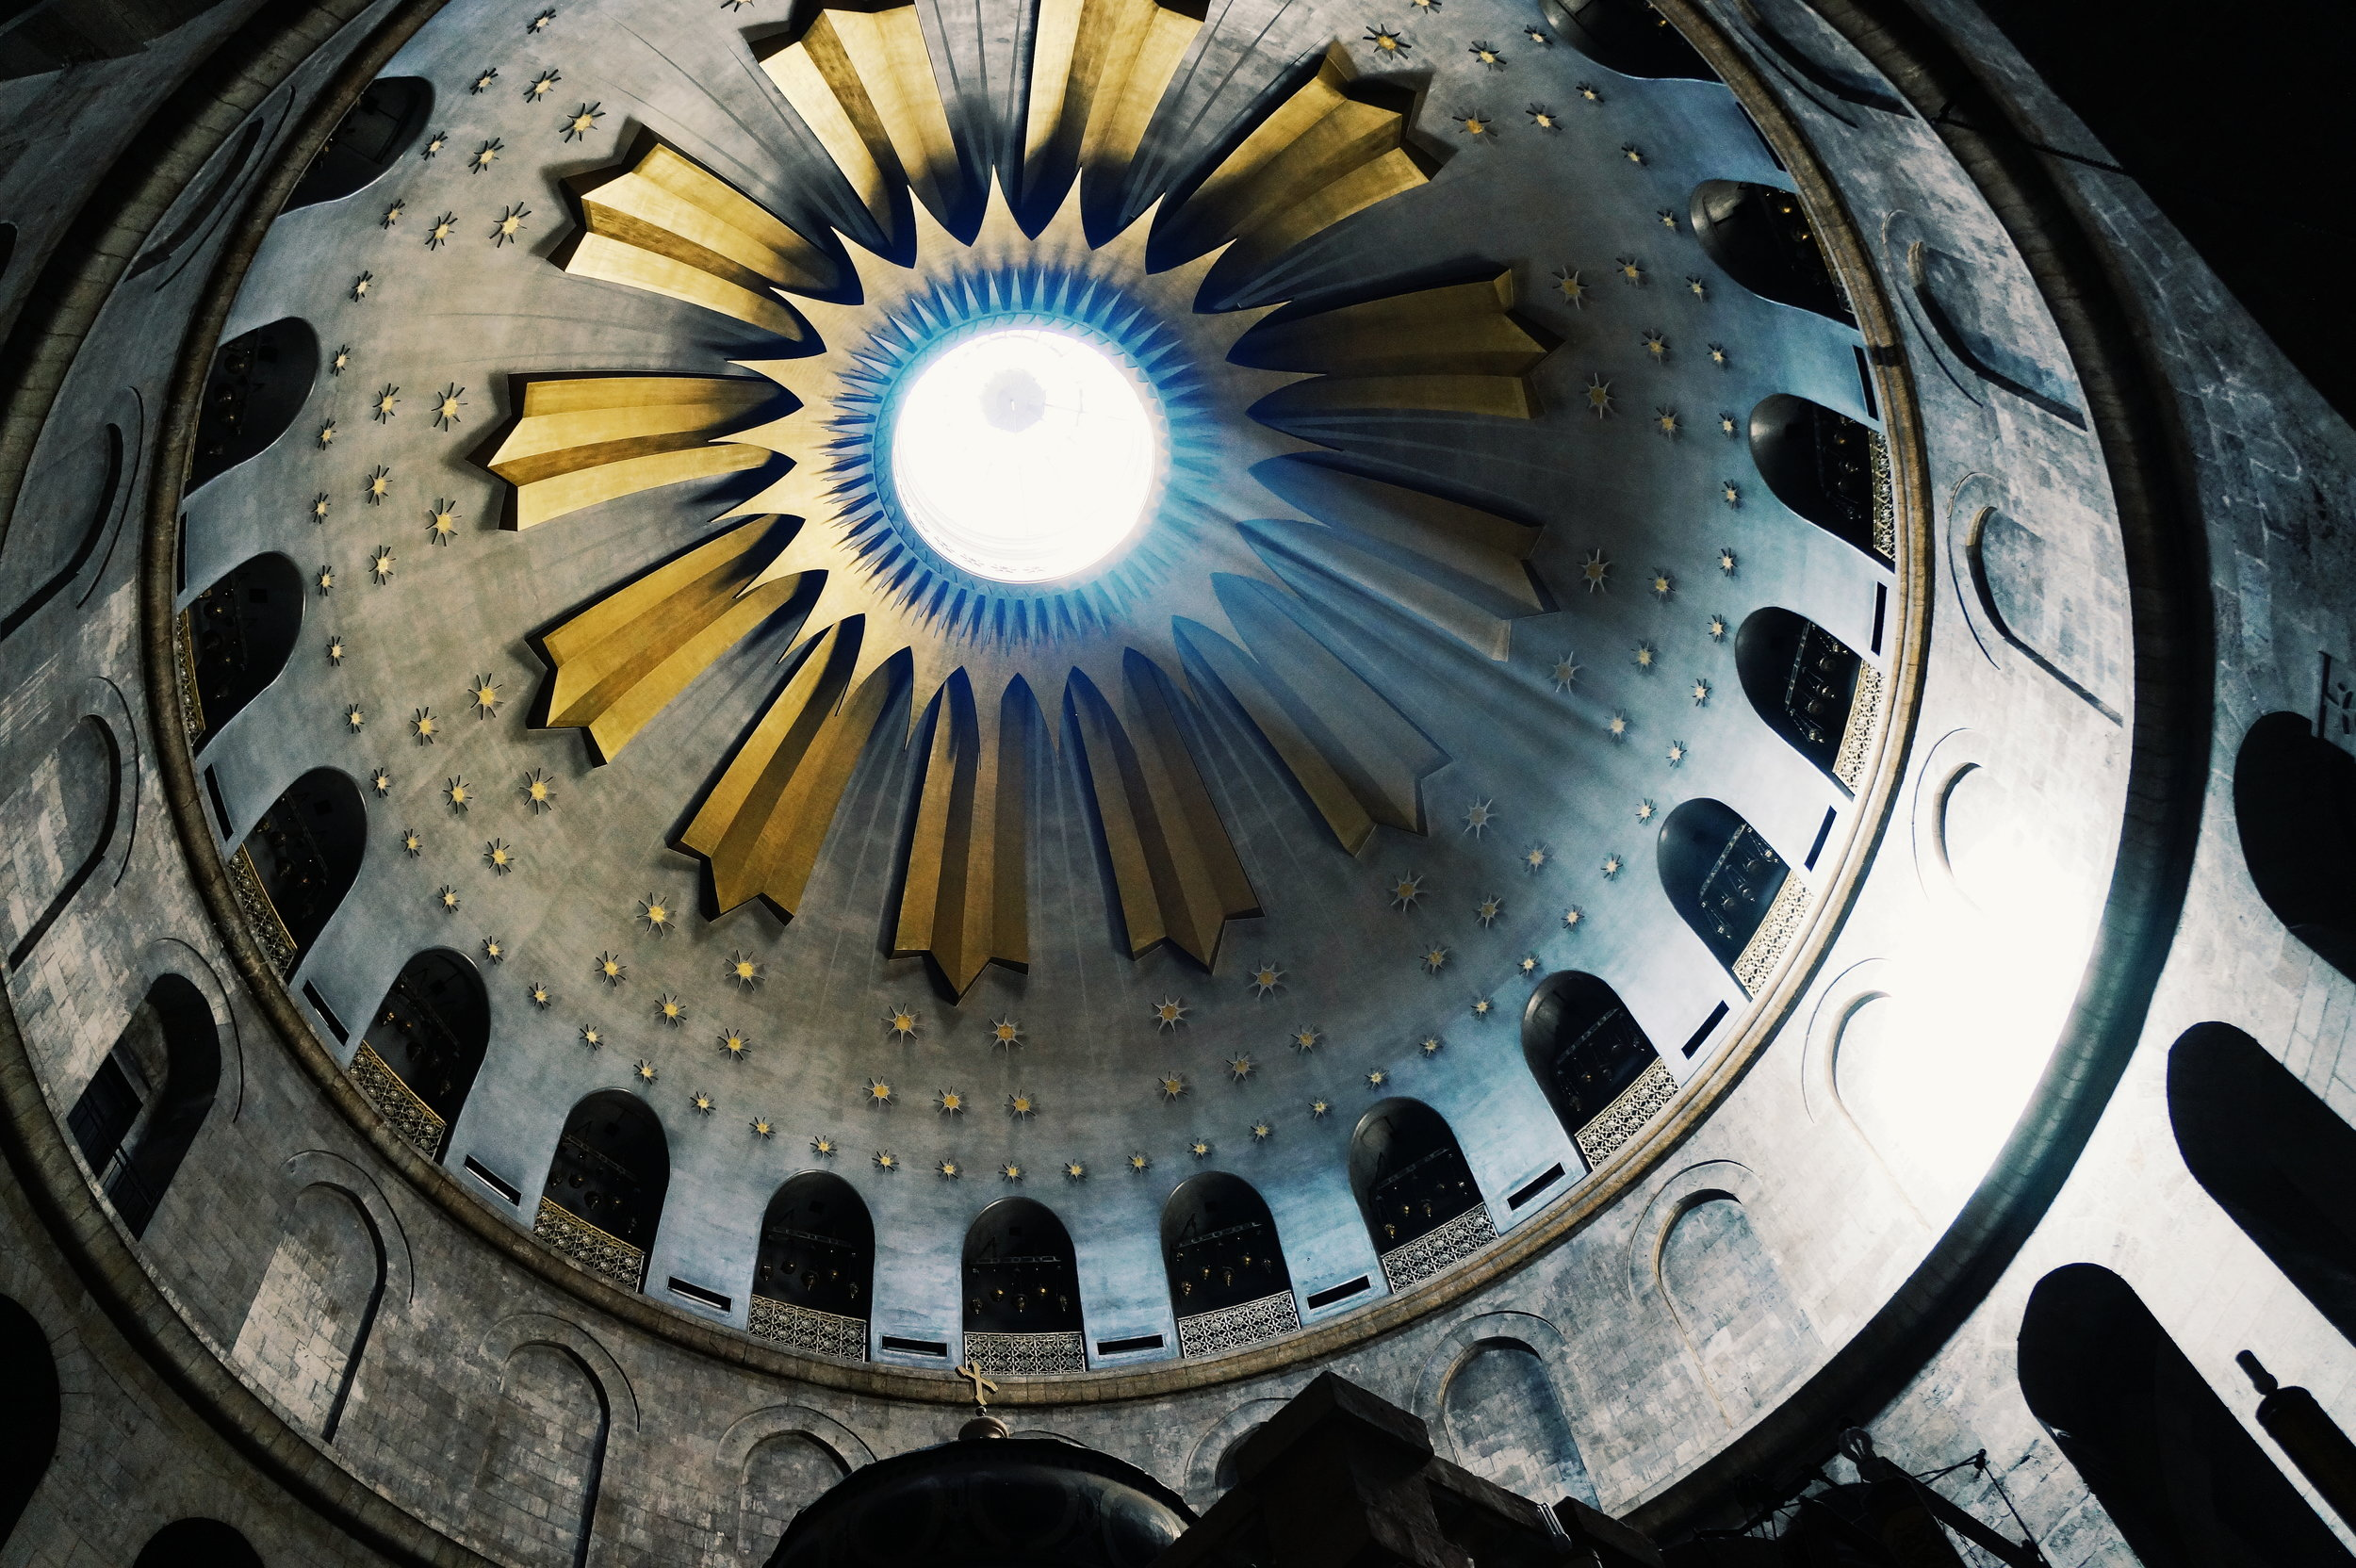 Inside the Church of the Holy Sepulchre.